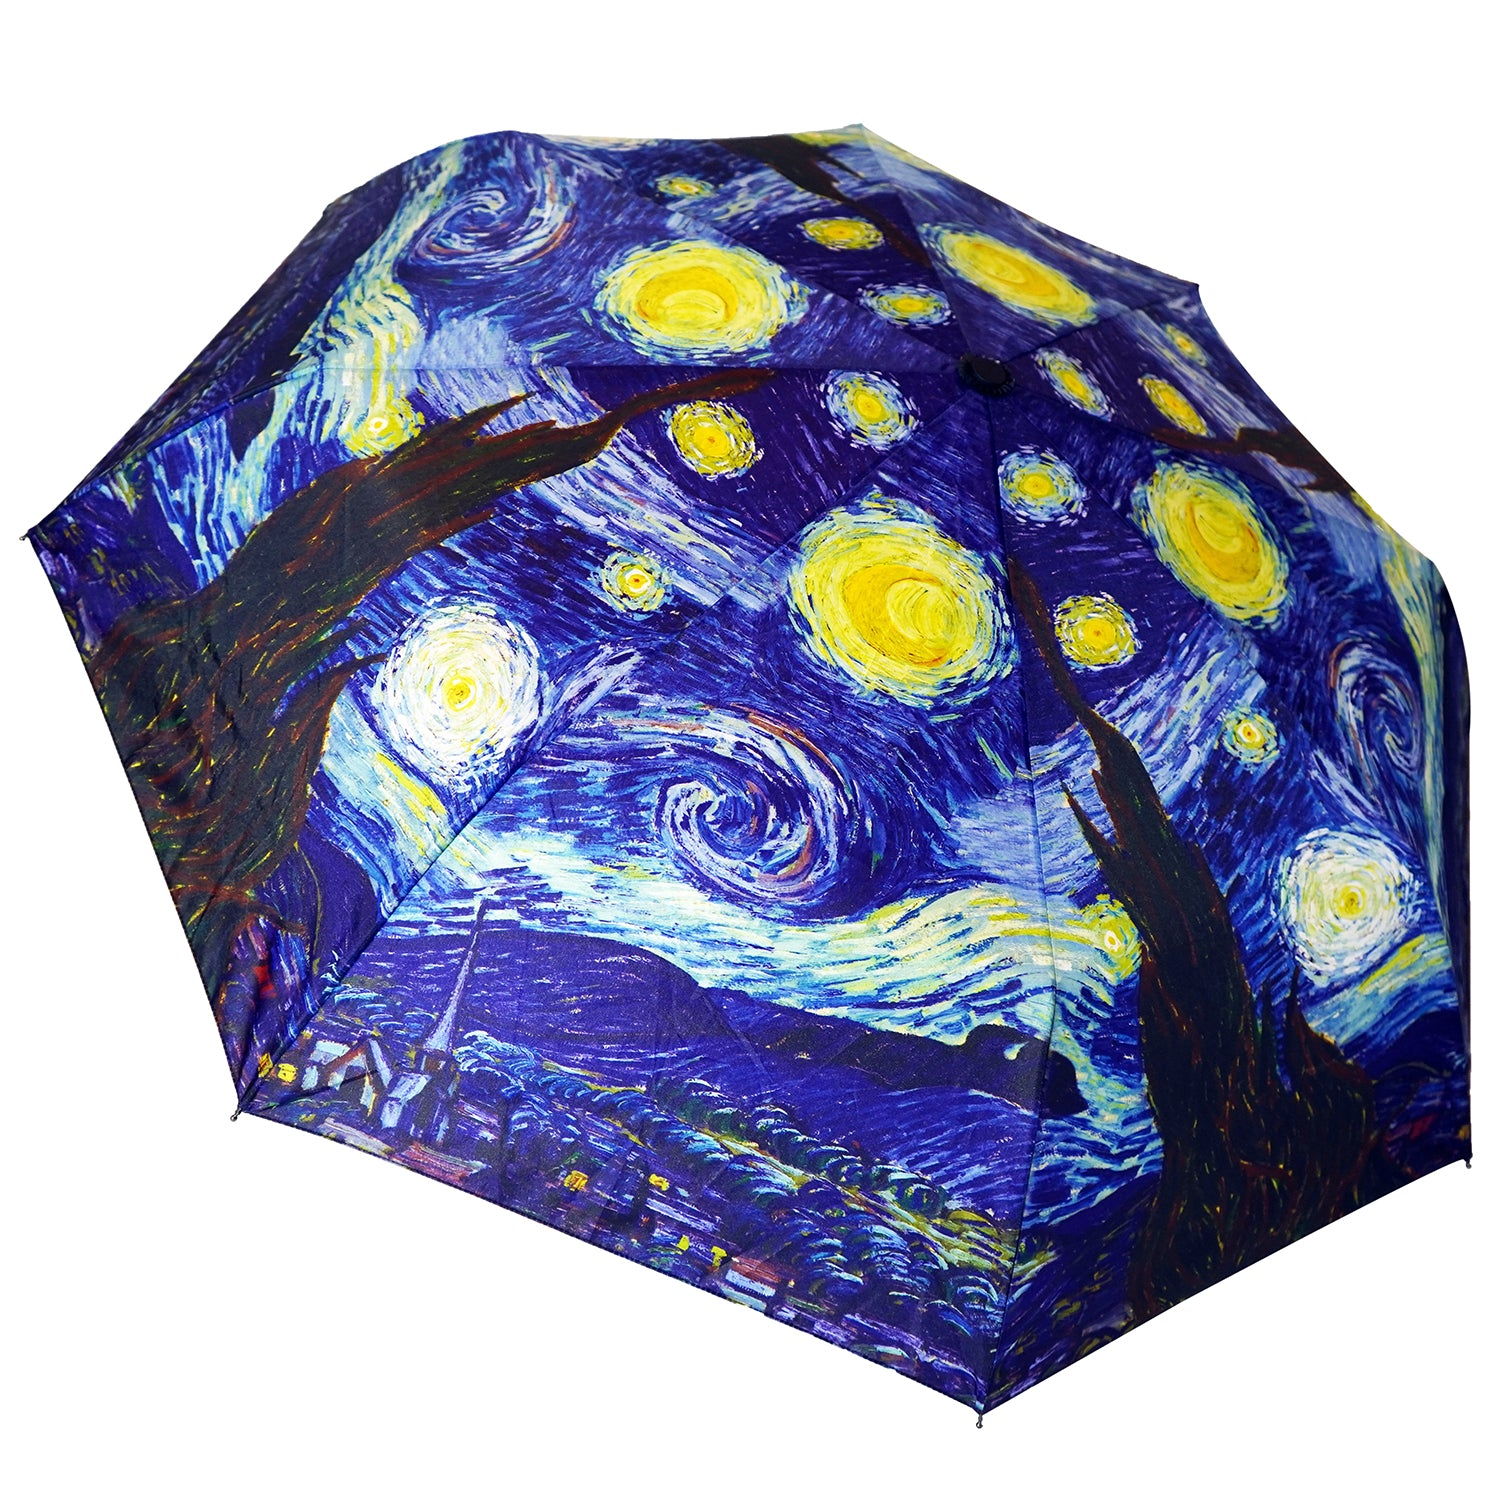 "Van Gogh Starry Night 12"" Mini  Auto Open and Close Premium Umbrella"